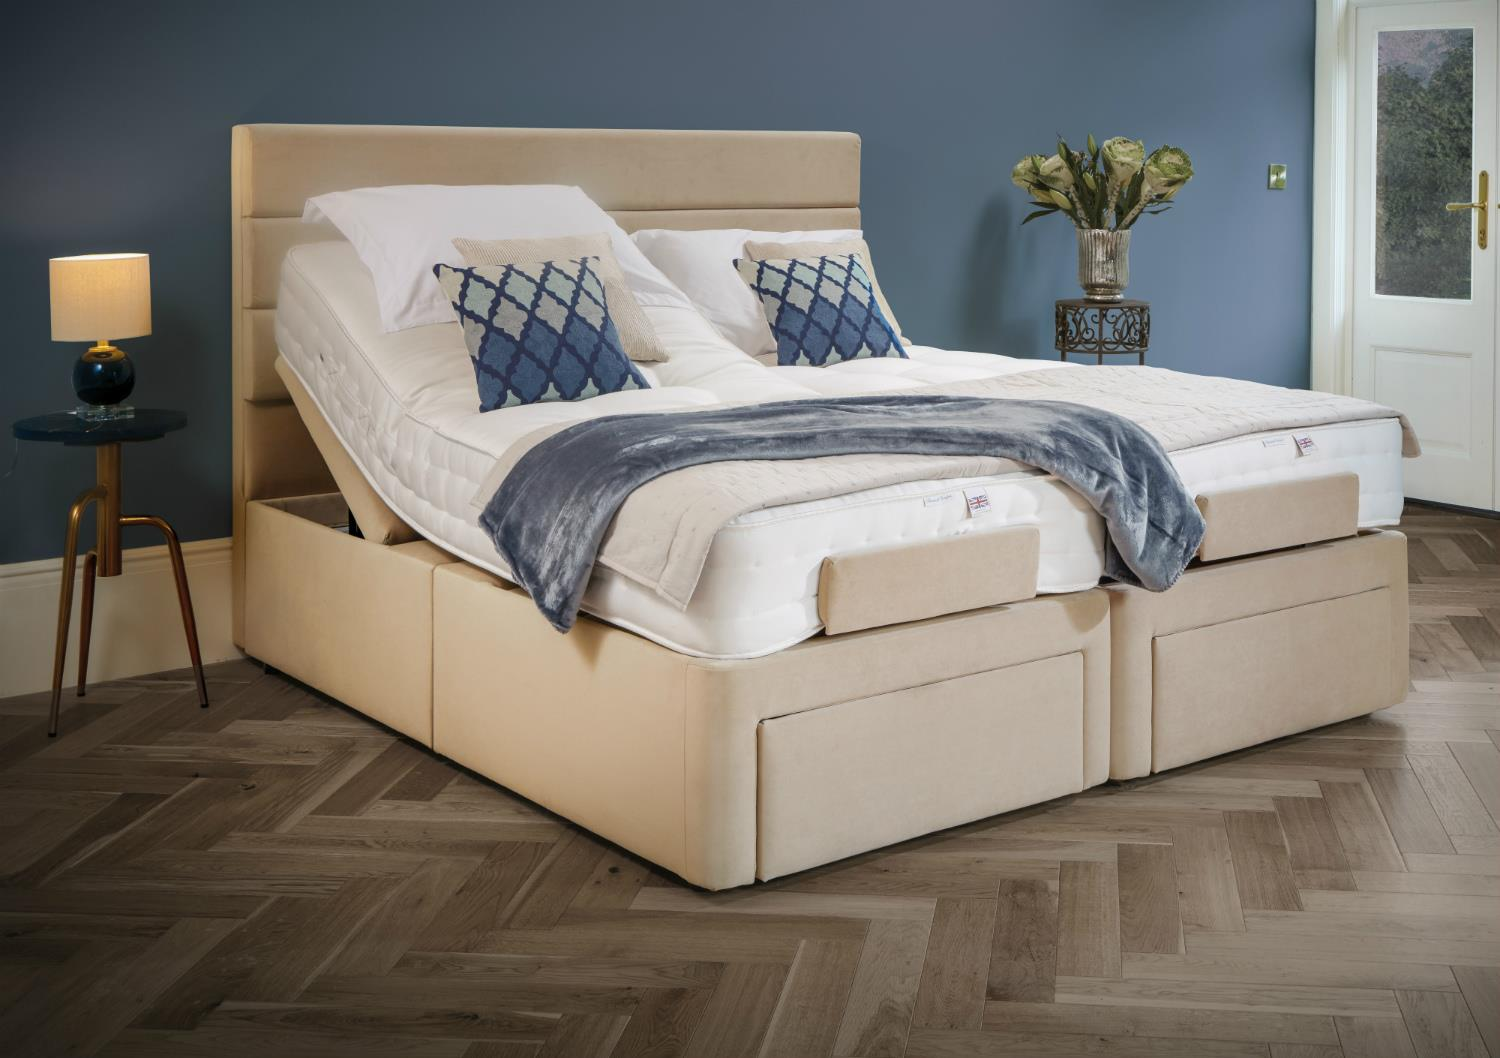 Sherborne - DEVONSHIRE Adjustable Bed